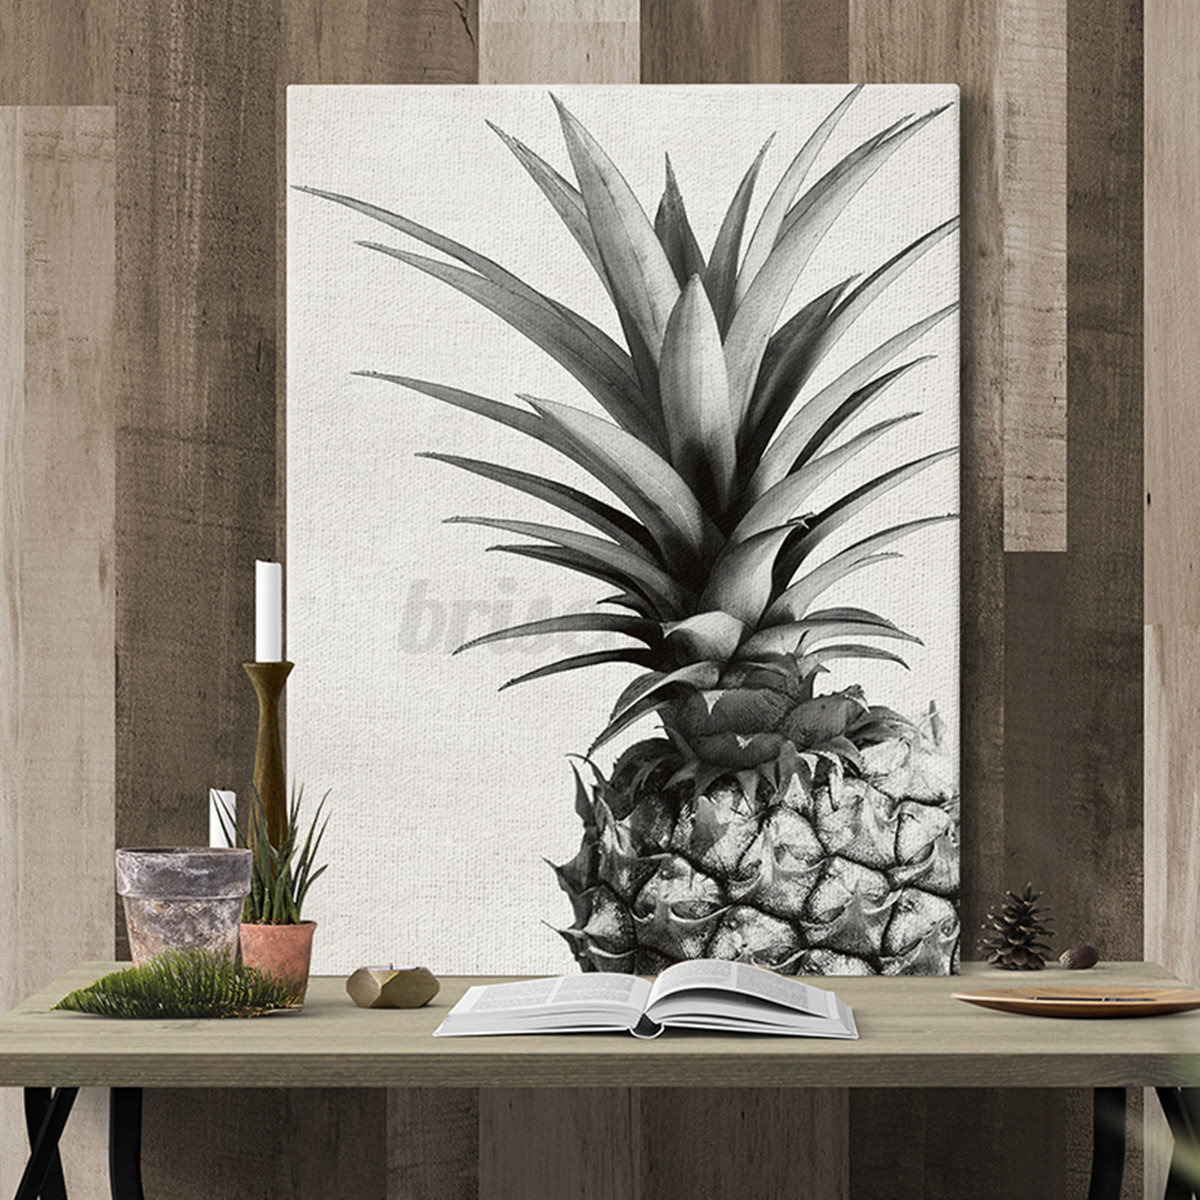 Unframed Bedroom Wall Art Decor Canvas Painting Pineapple Picture